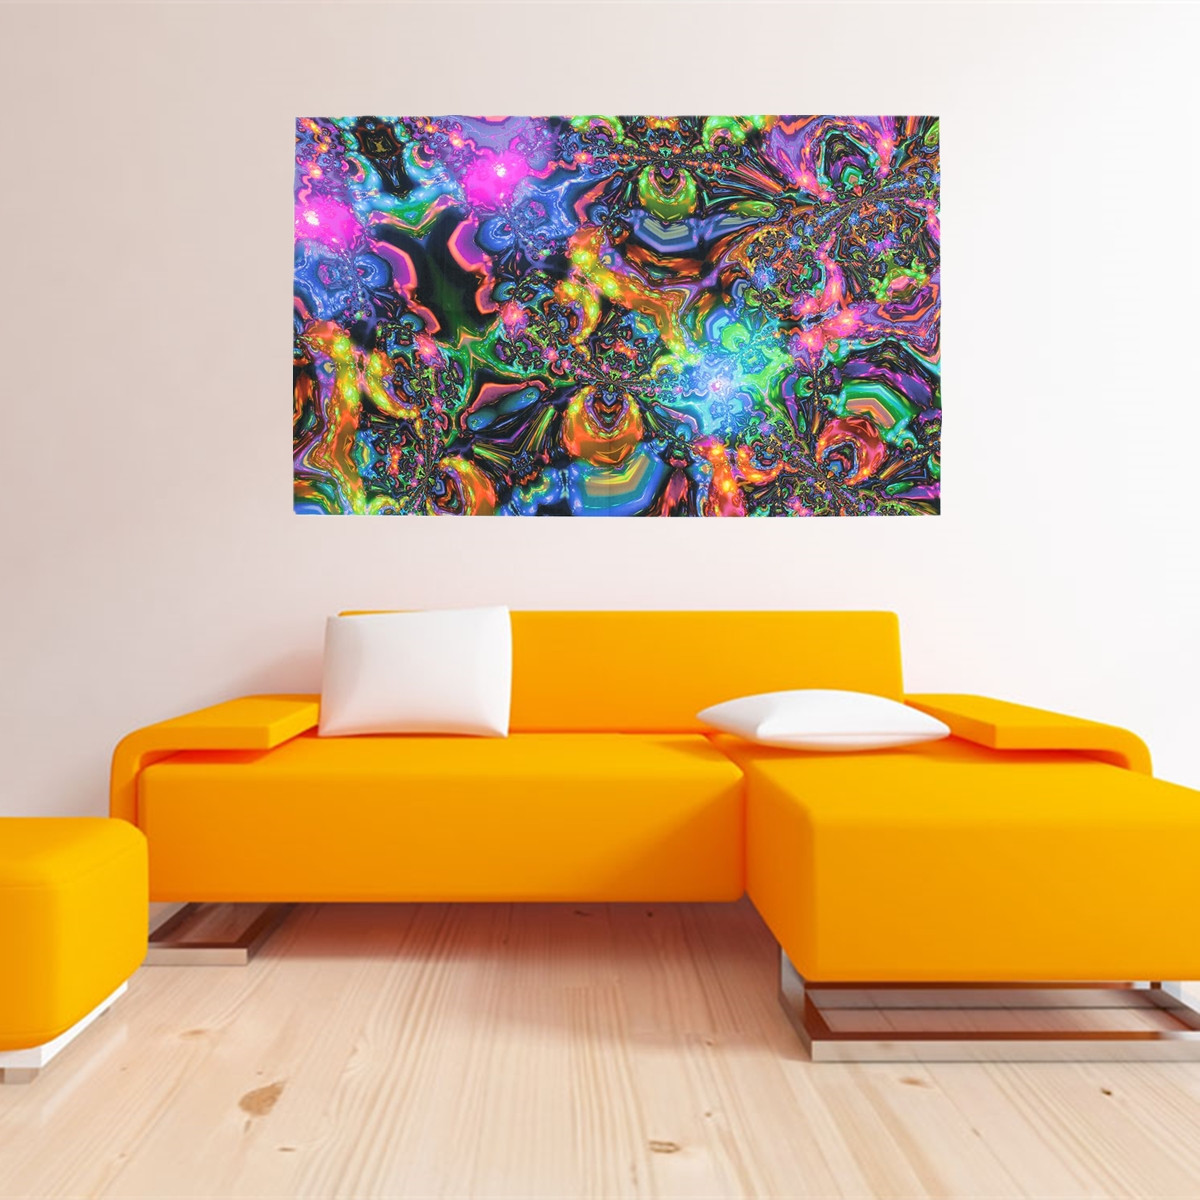 Modern Wall Hanging Art Psychedelic Trippy Oil Painting Picture Print Home Living Room Decor No Frame 40 X 24 Walmart Canada